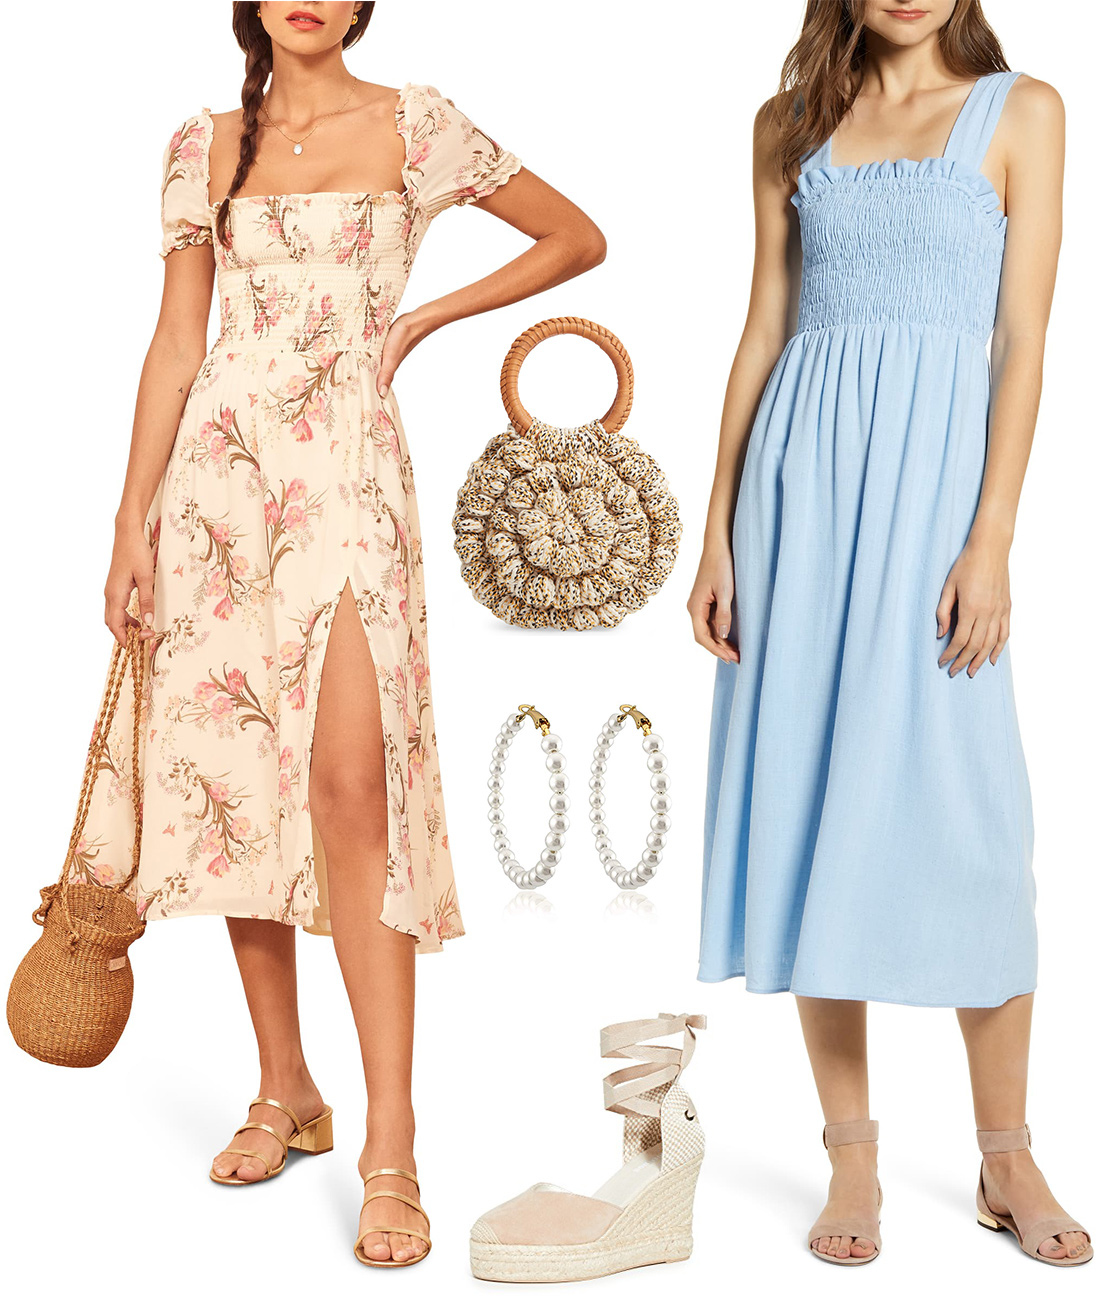 Summer Wedding Guest Outfit Ideas My Favorites The Stripe,Martina Liana Wedding Dress Prices Uk